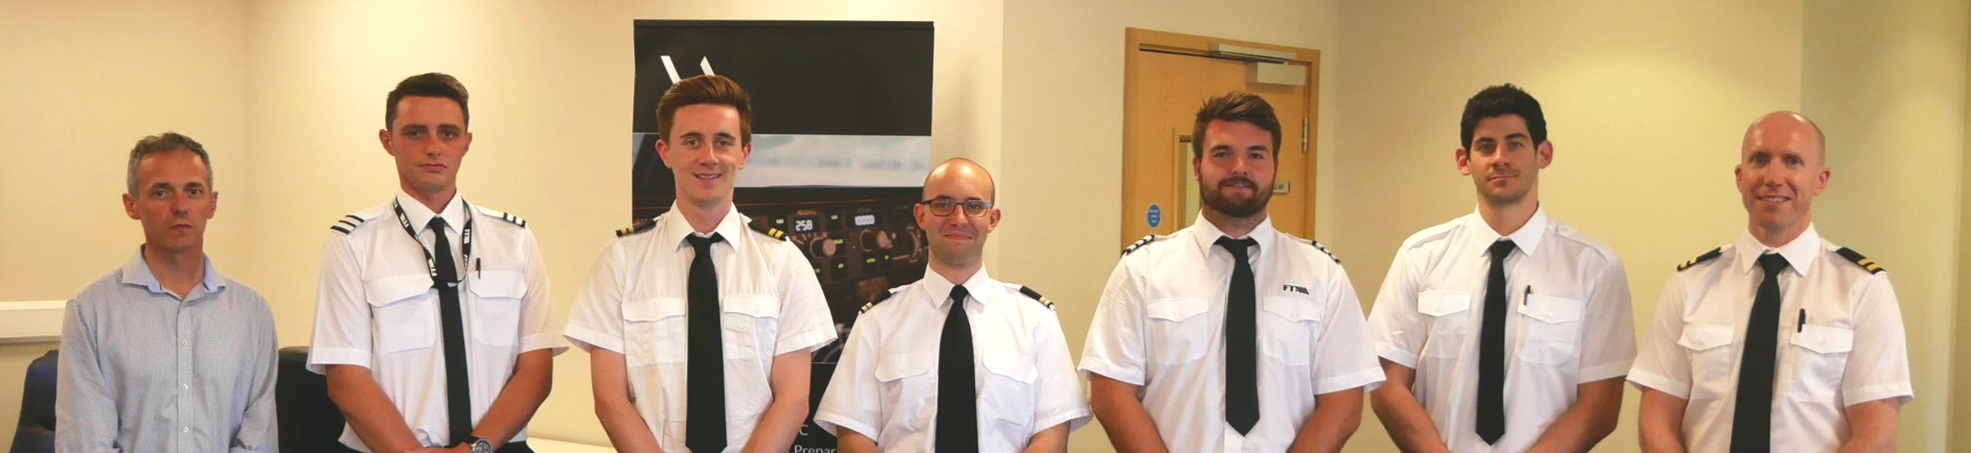 APS MCC class 1818 graduates Christophe, Jean, Will, Oscar, Ryan, Adar and Andrew who now fly for a range of airlines including Ryanair, Thomas Cook and Saxon Air.